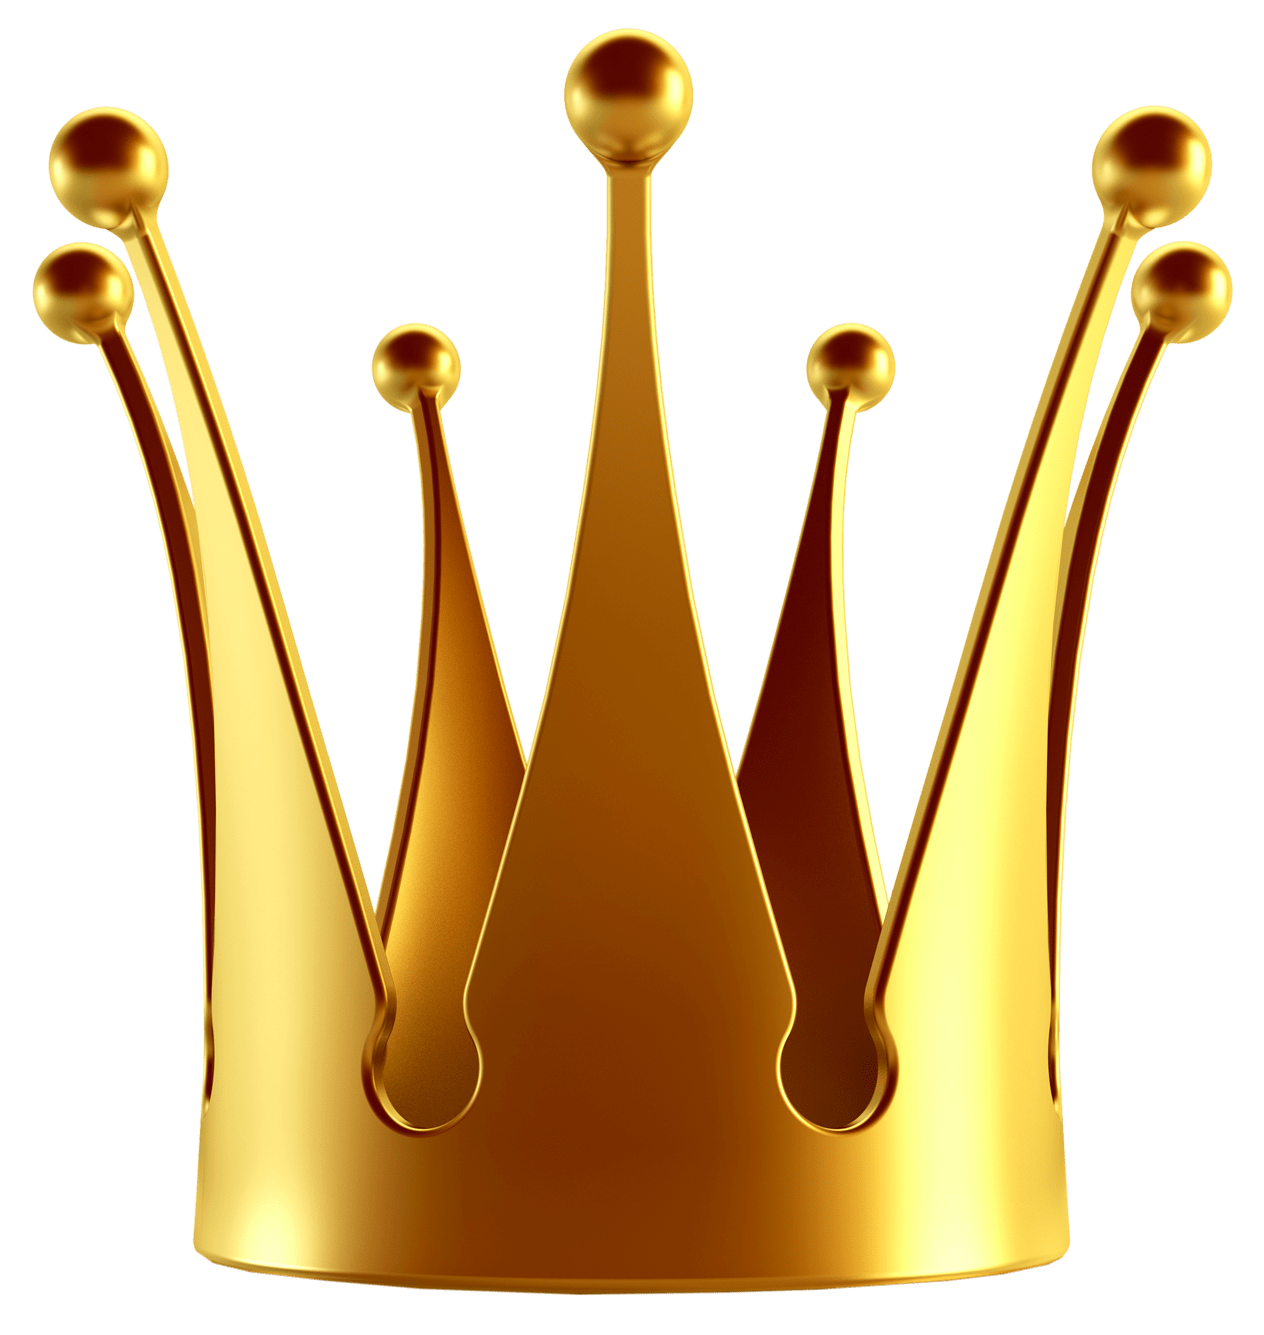 Pare Feu Chemin Cheminée Transparent Gold Crown Transparent Png Transparent Artclip Pinterest